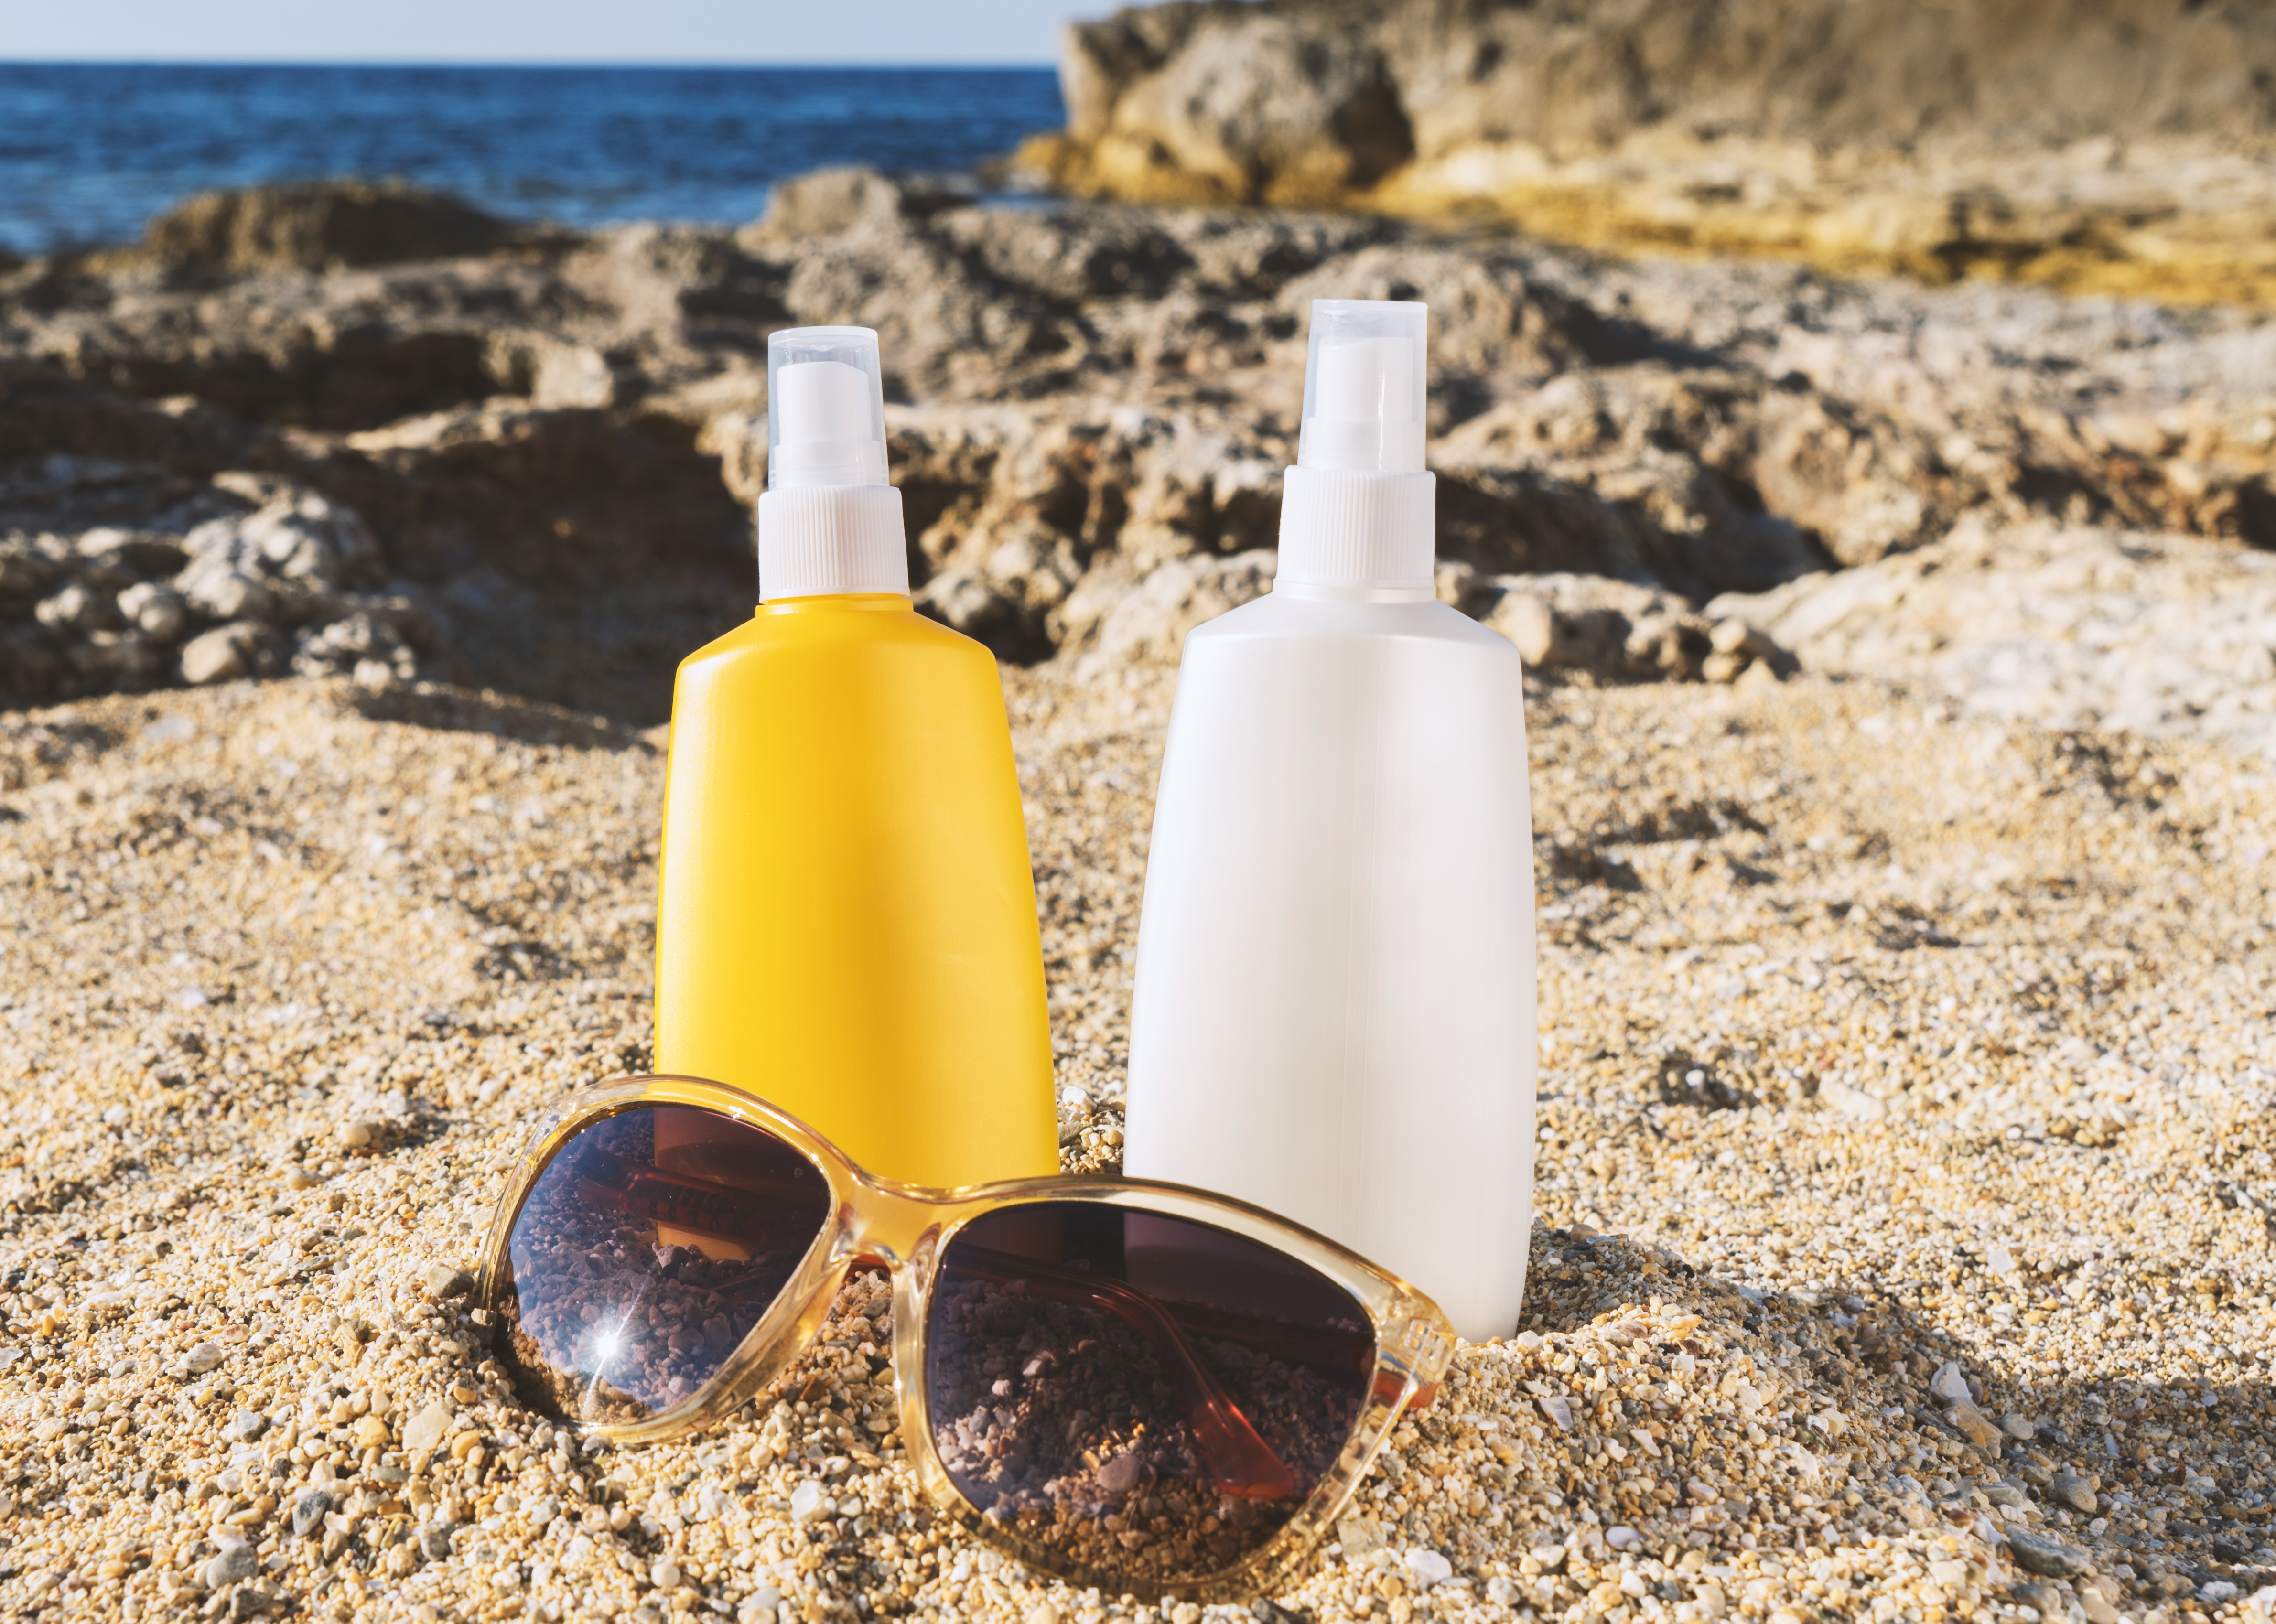 TANNING AND SKIN CARE PRODUCTS